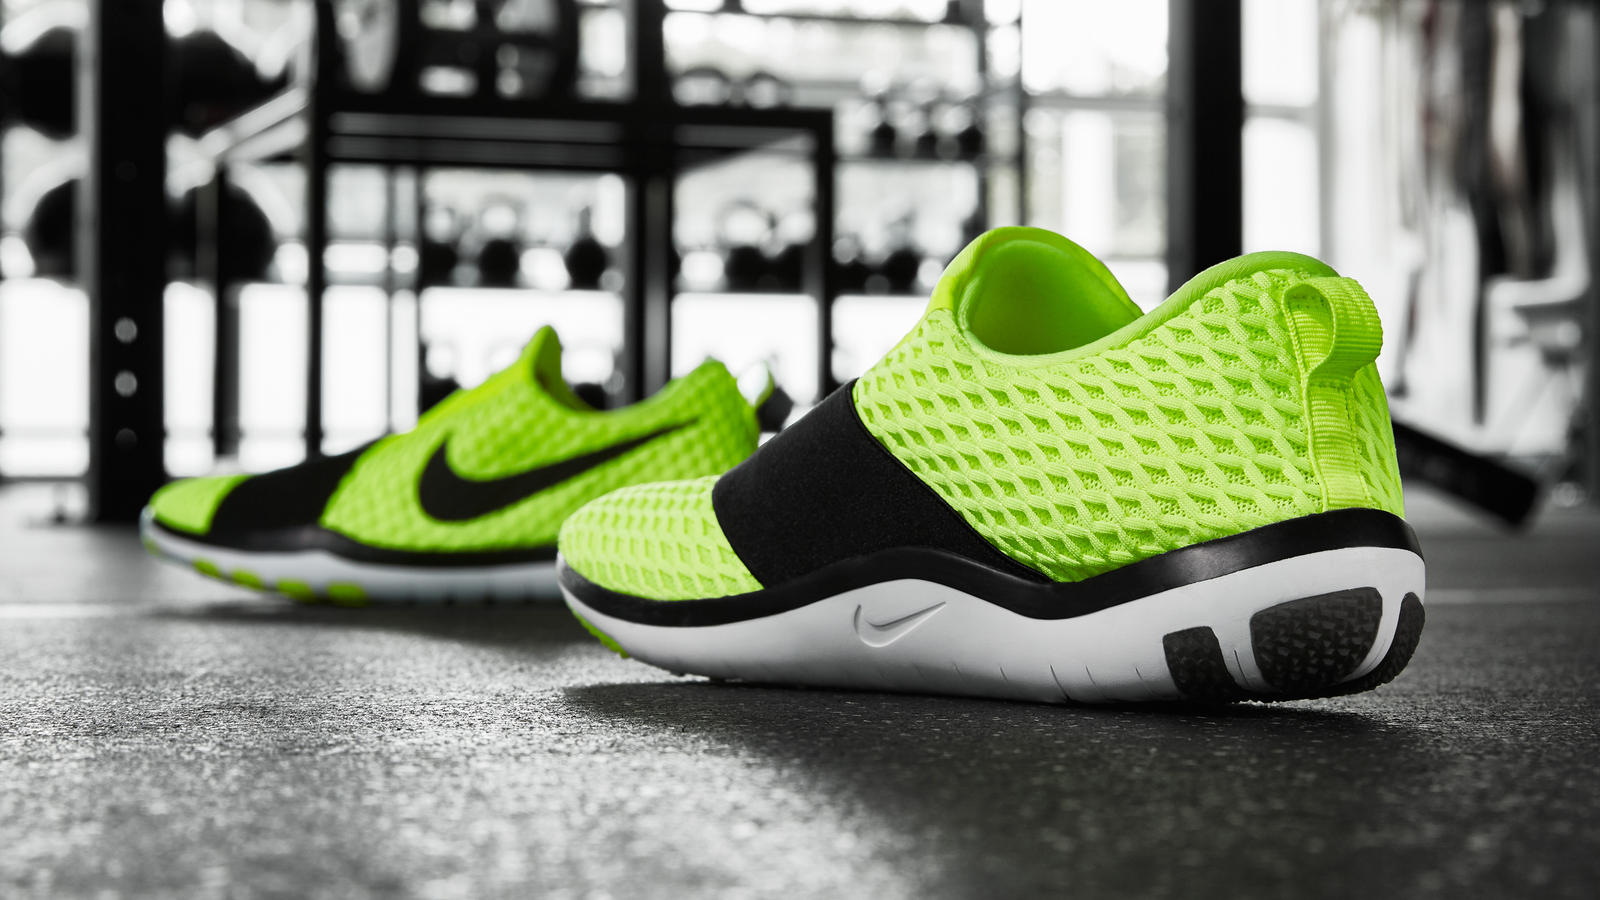 Nike news sneaker feed volt wms training 3q 1610 hd 1600